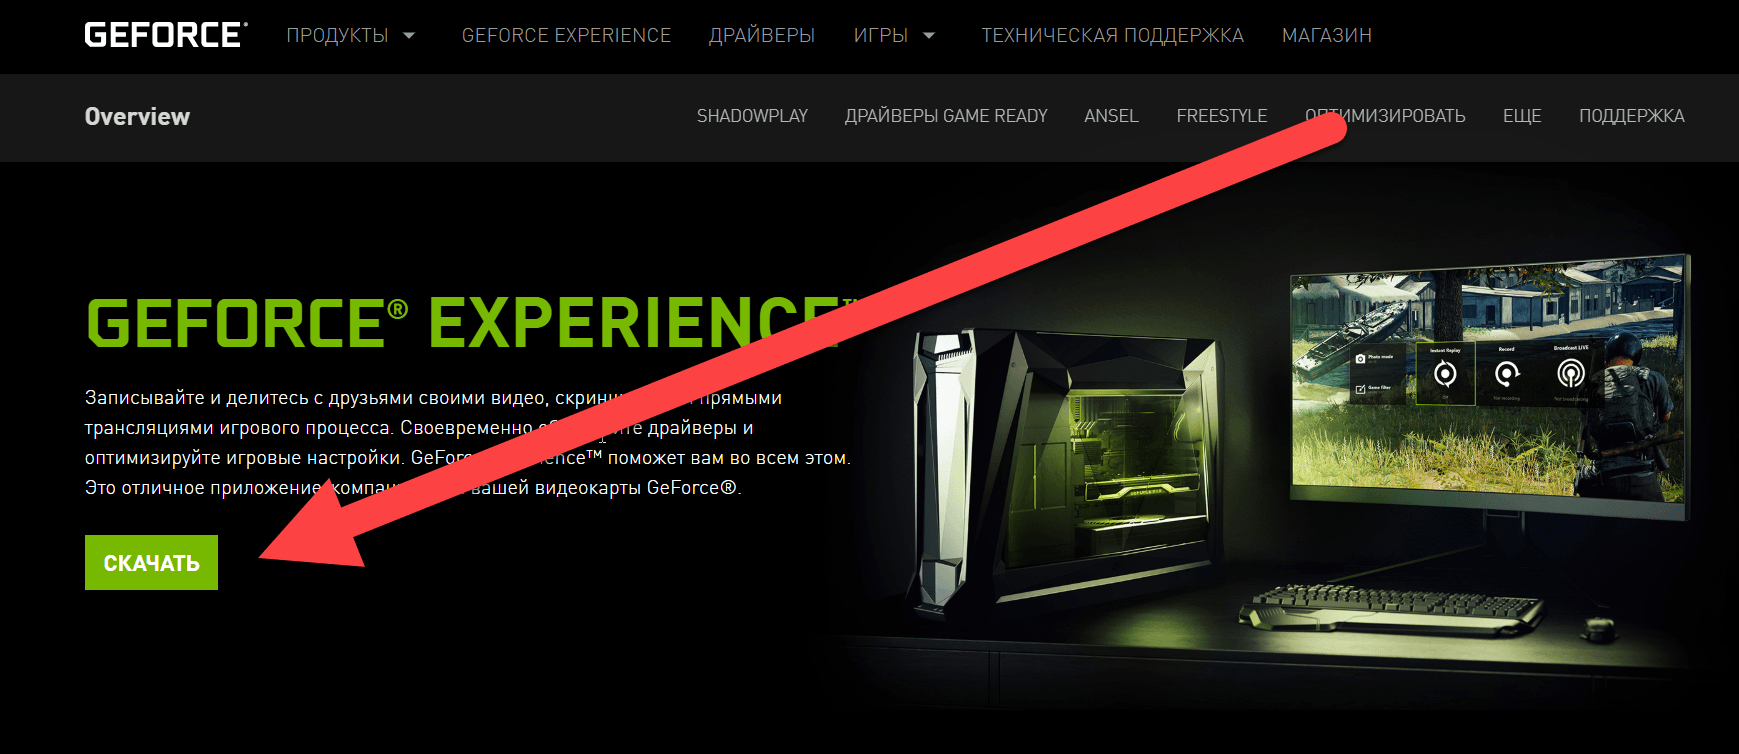 Nvidia Geforce Experience скачать